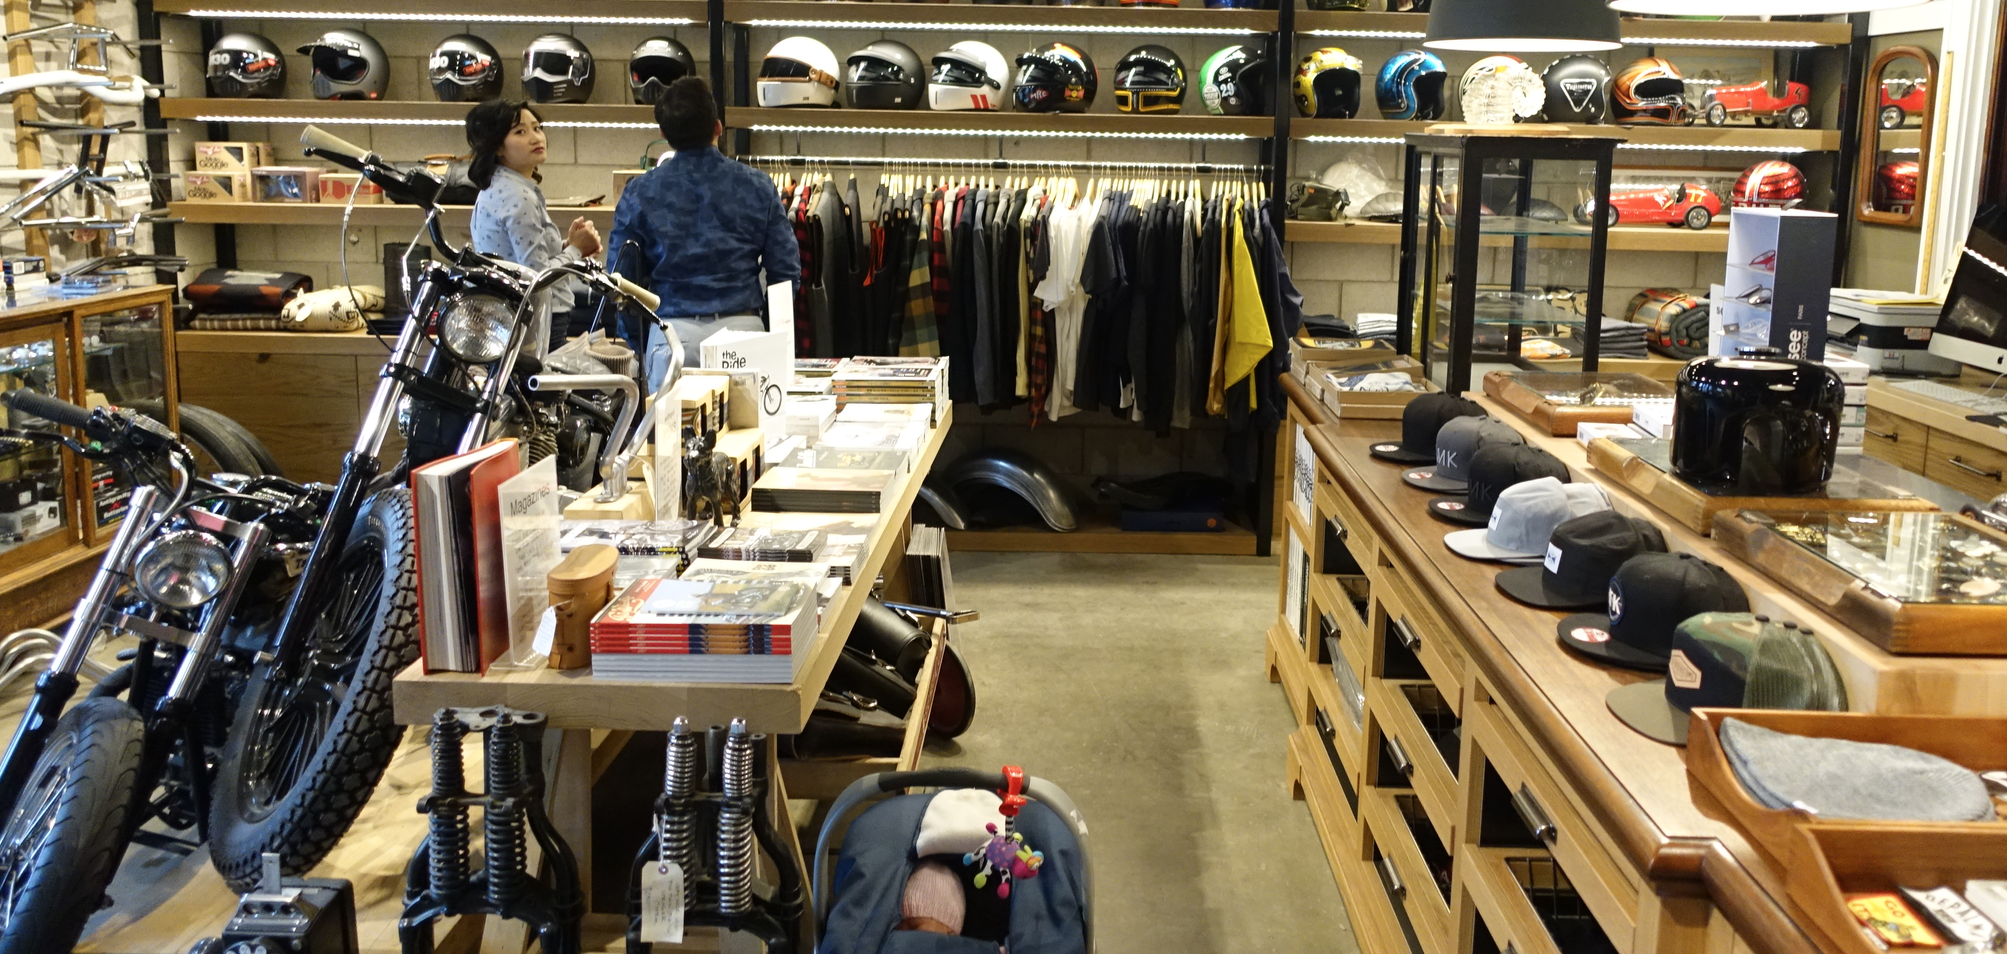 Ill-Fated Kustoms  is part fashion, part second hand, part motorcycle store in Manchester.